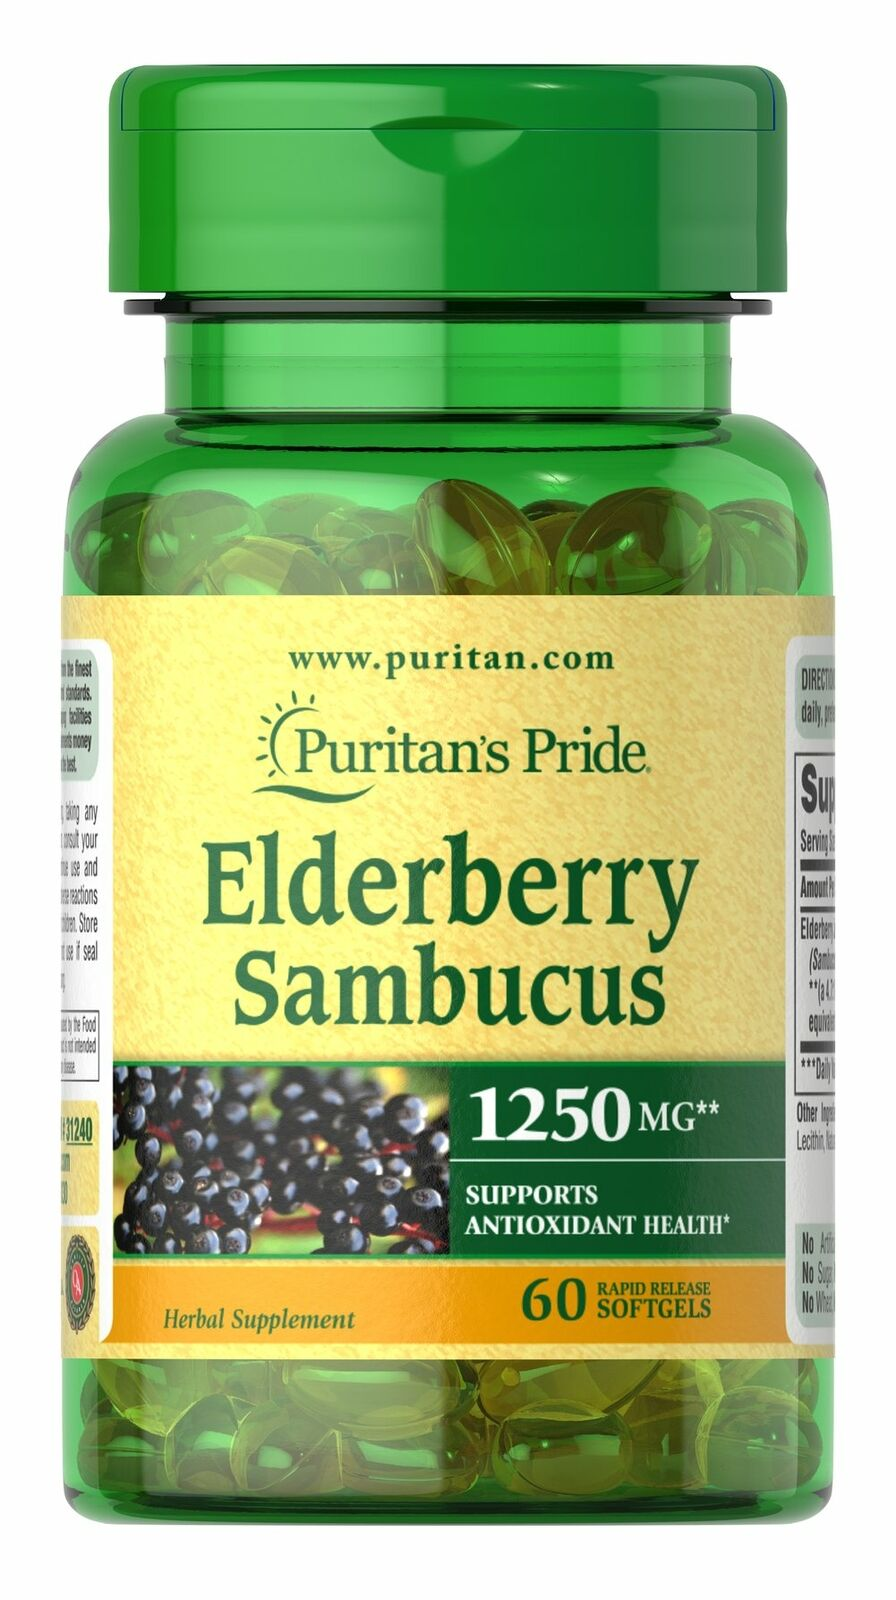 Elderberry Sambucus 1250 mg - 60 Softgels